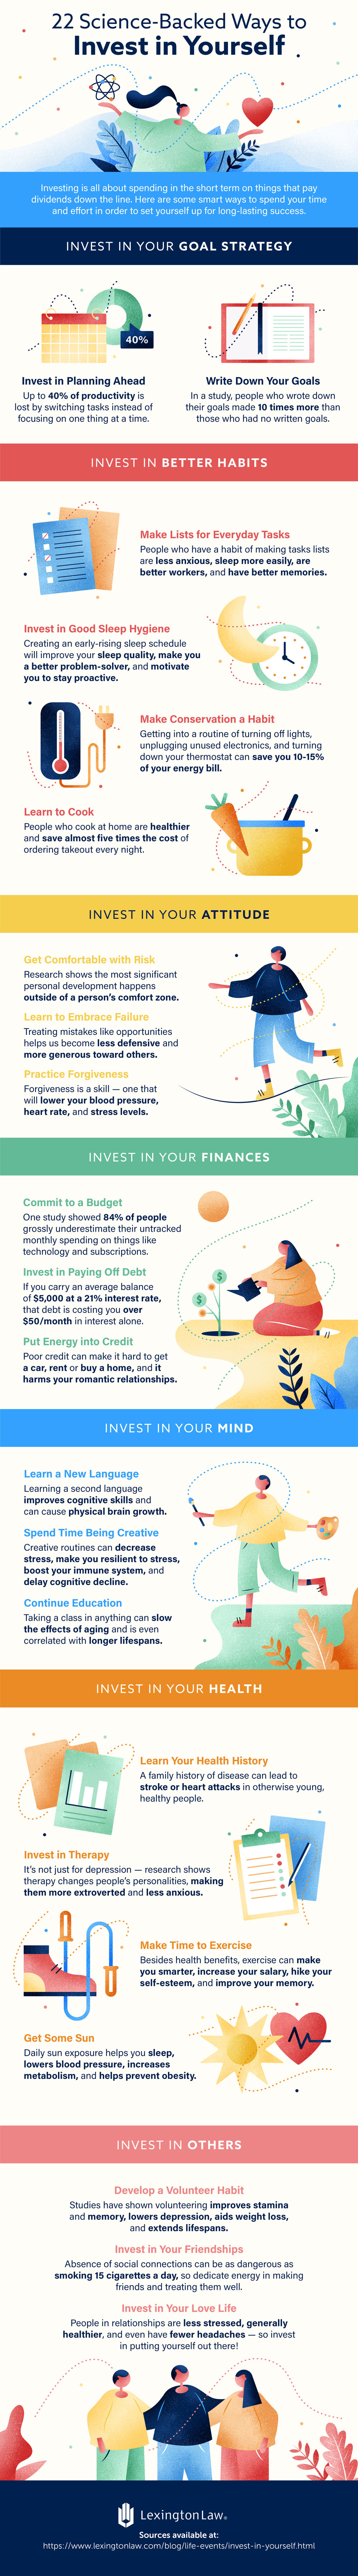 Self-Investment is the Foremost Investment: 22 Reasons Why and How - Infographic